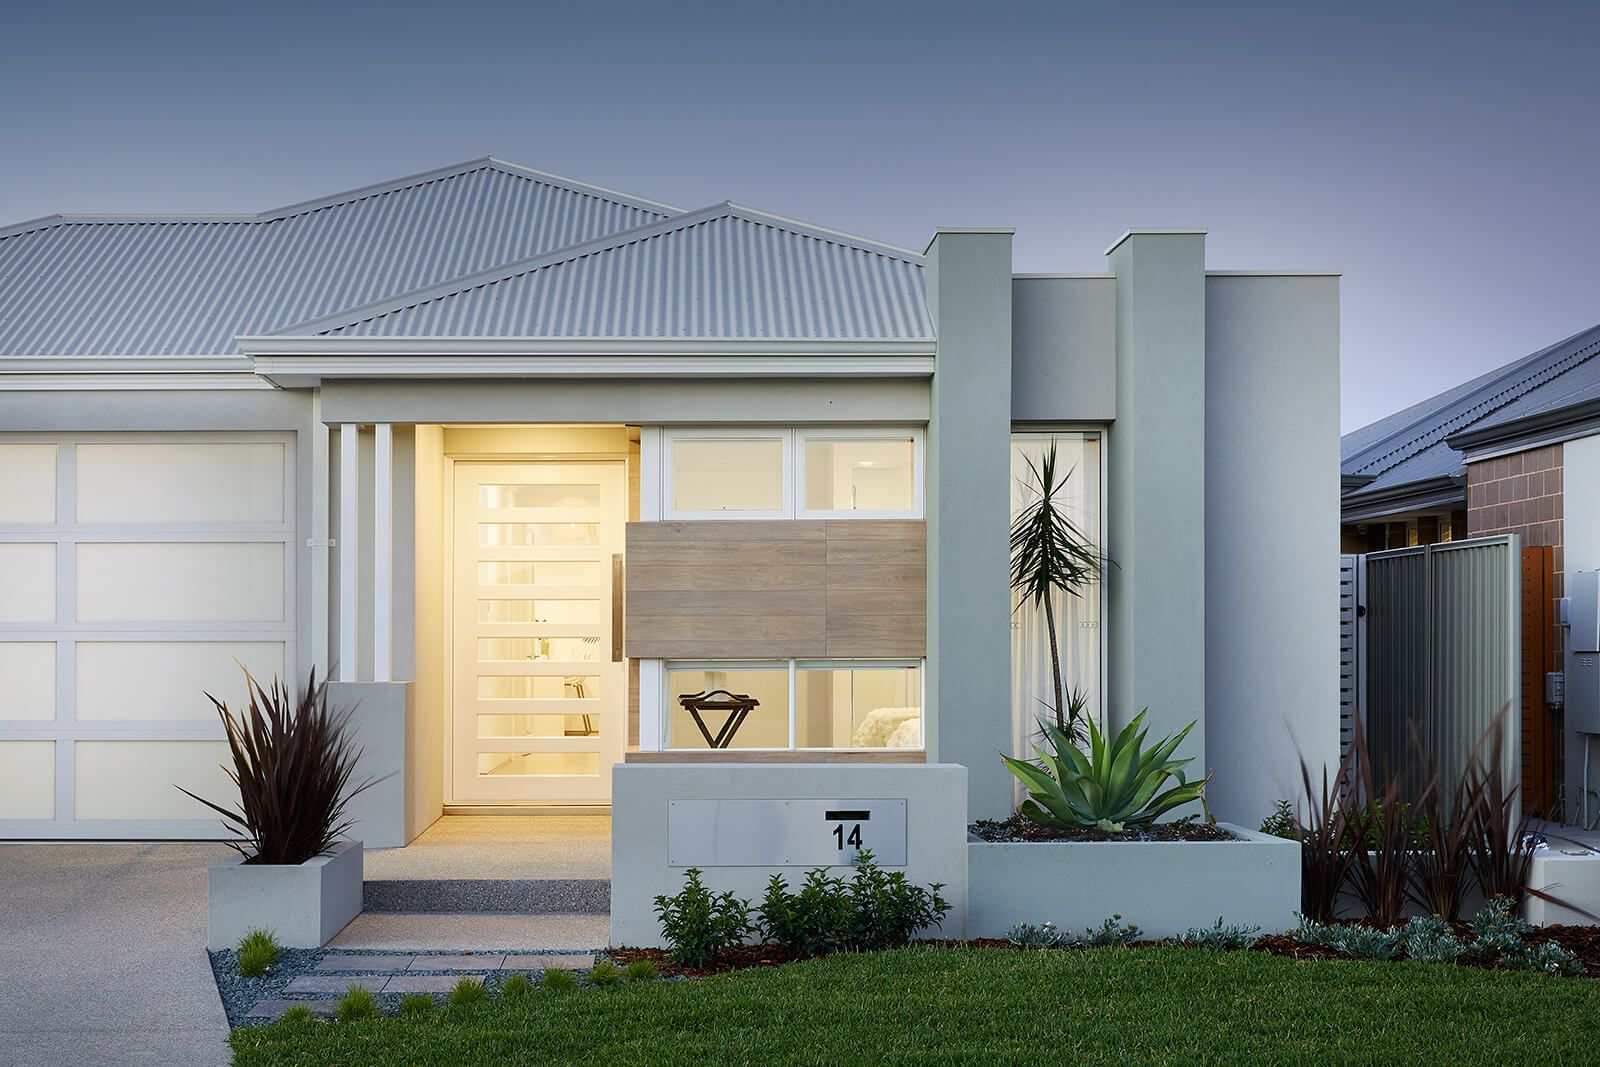 Display home piara waters the whiteoak display and house display home piara waters the whiteoak blueprint homes malvernweather Image collections